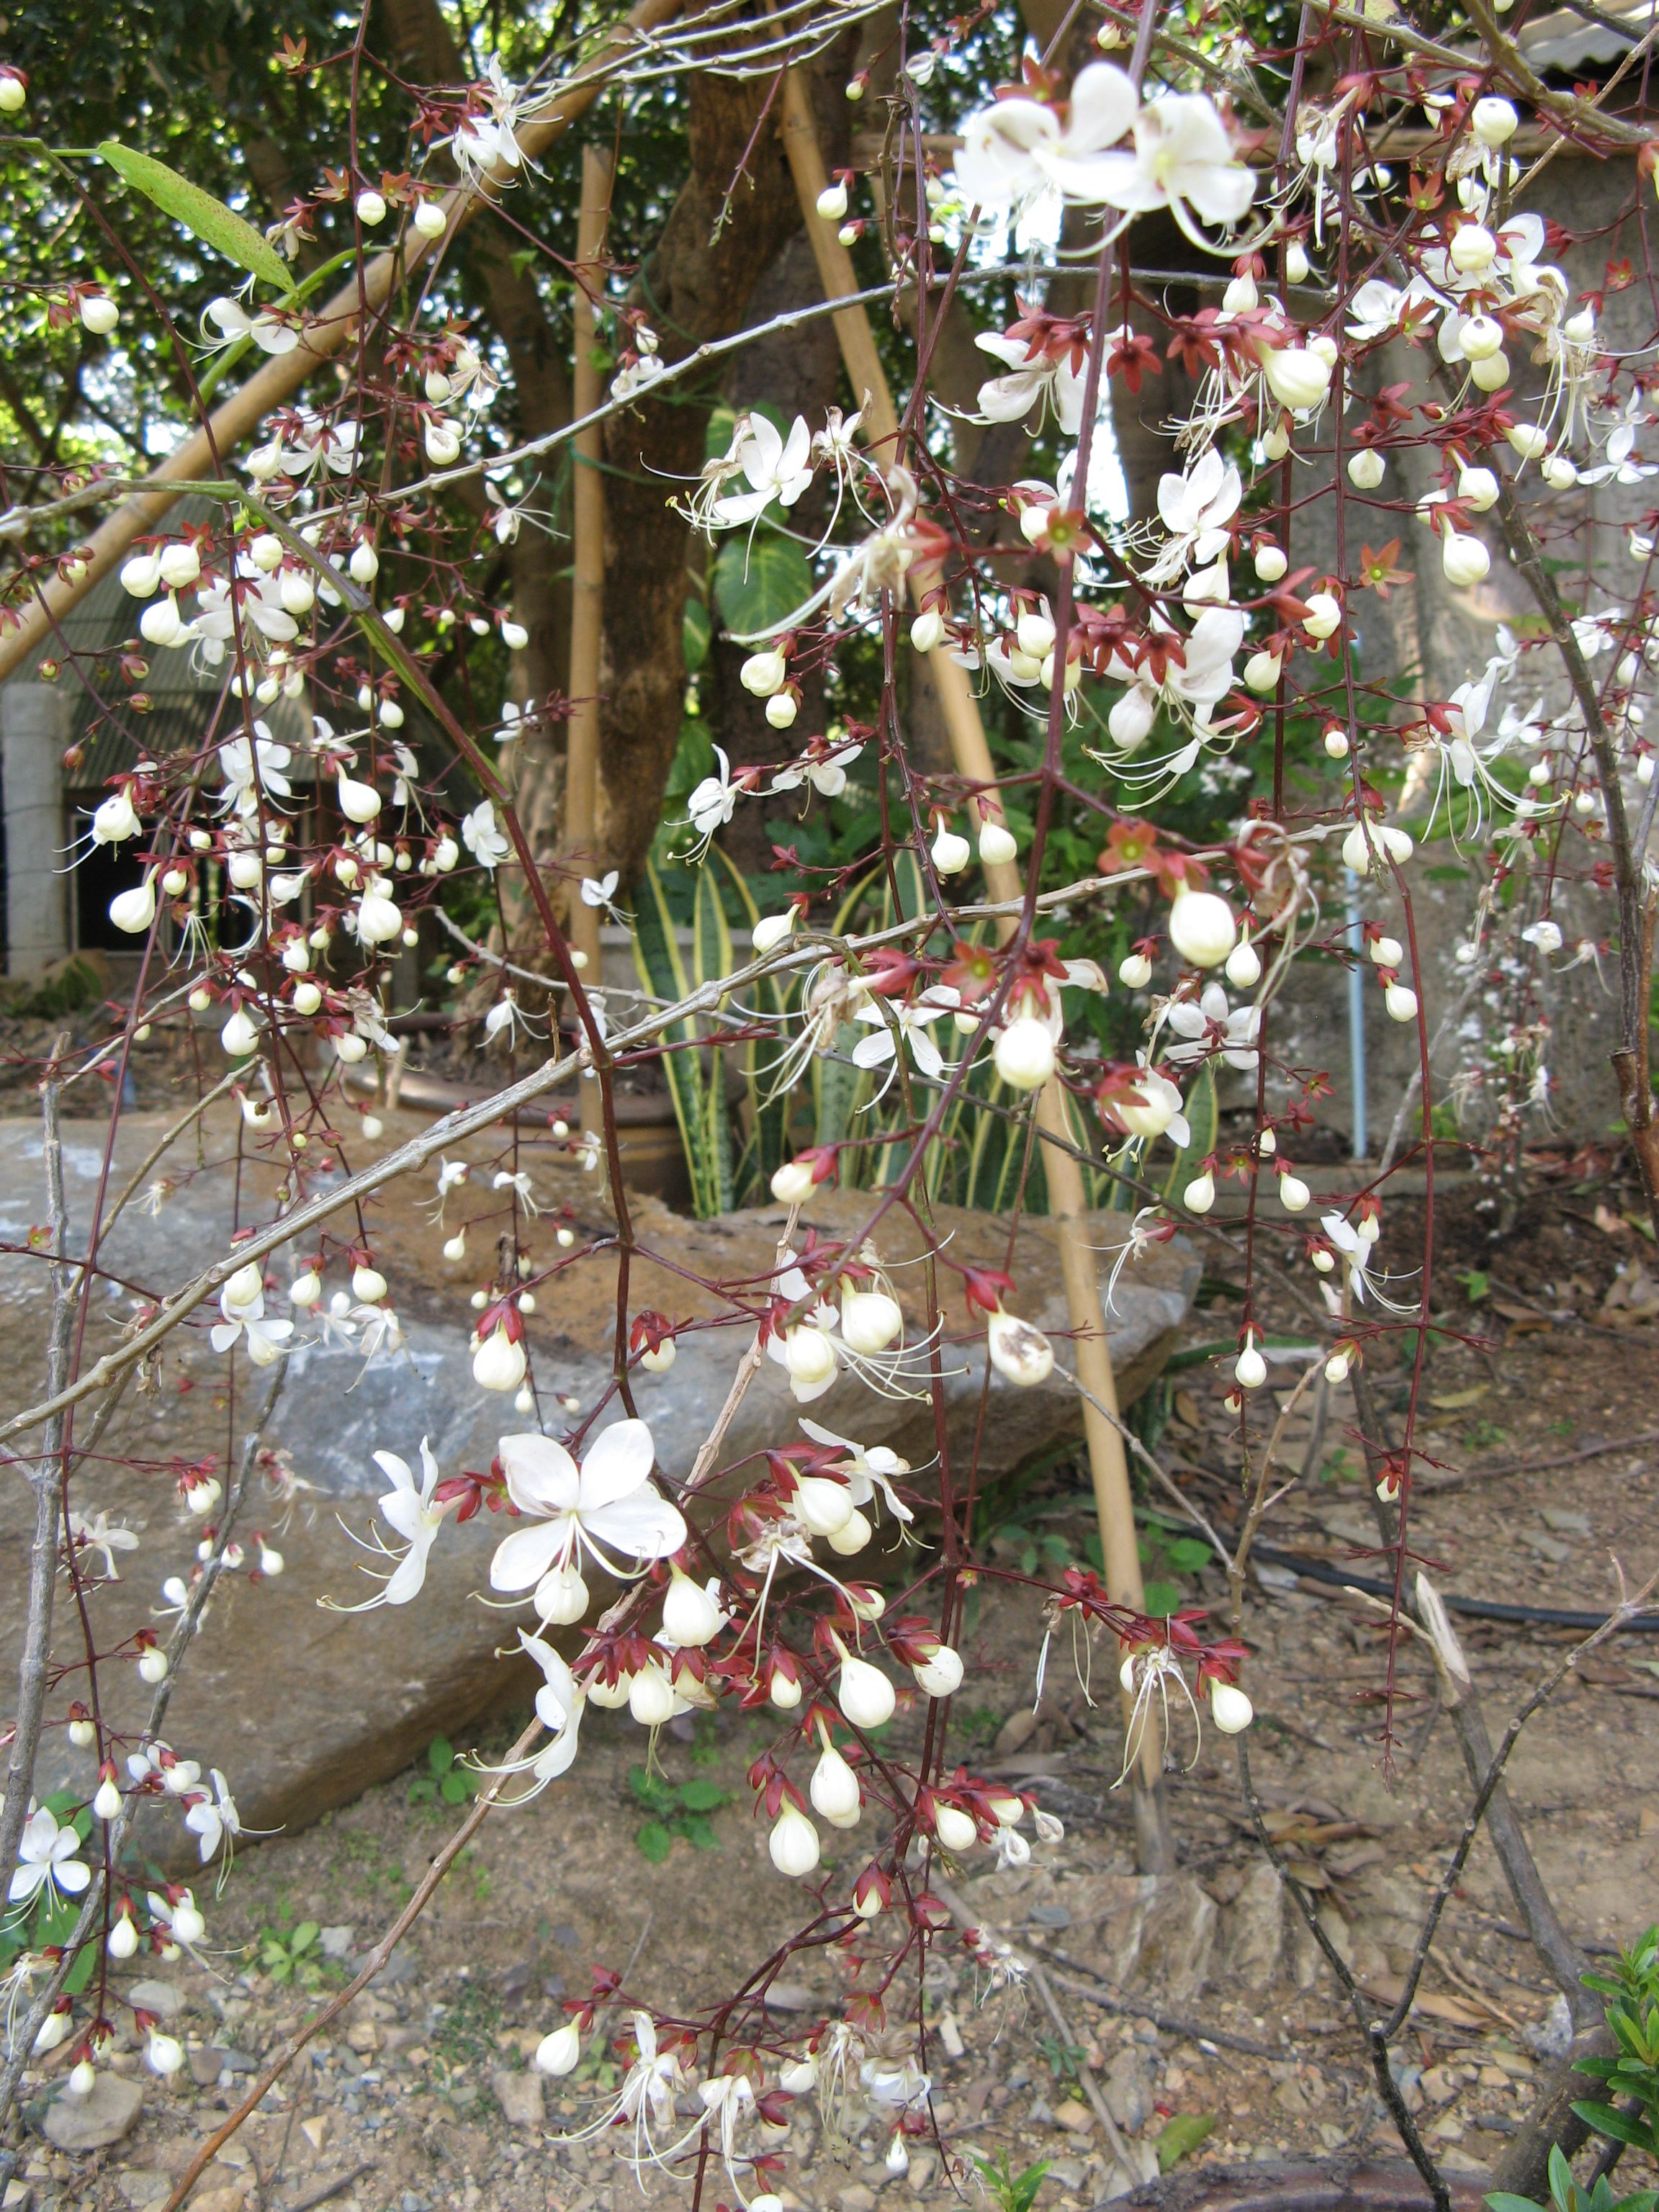 File:Clerodendrum wallichii01.JPG - Wikimedia Commons